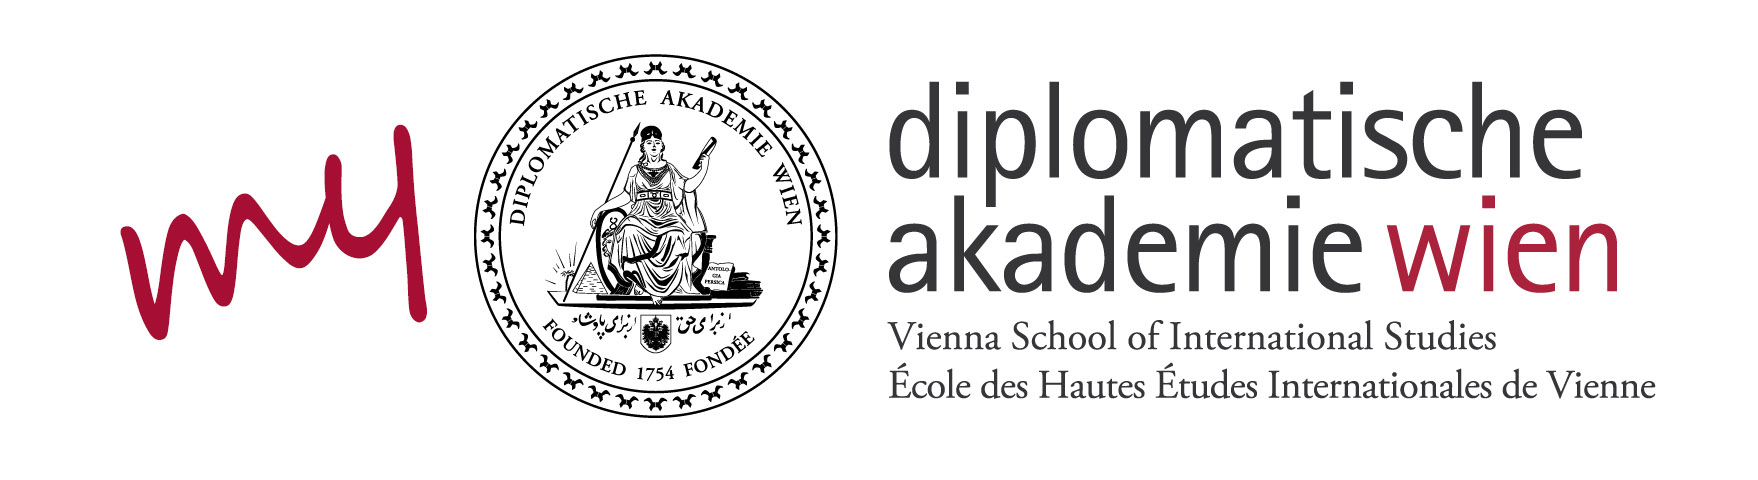 my.da-vienna.ac.at Logo